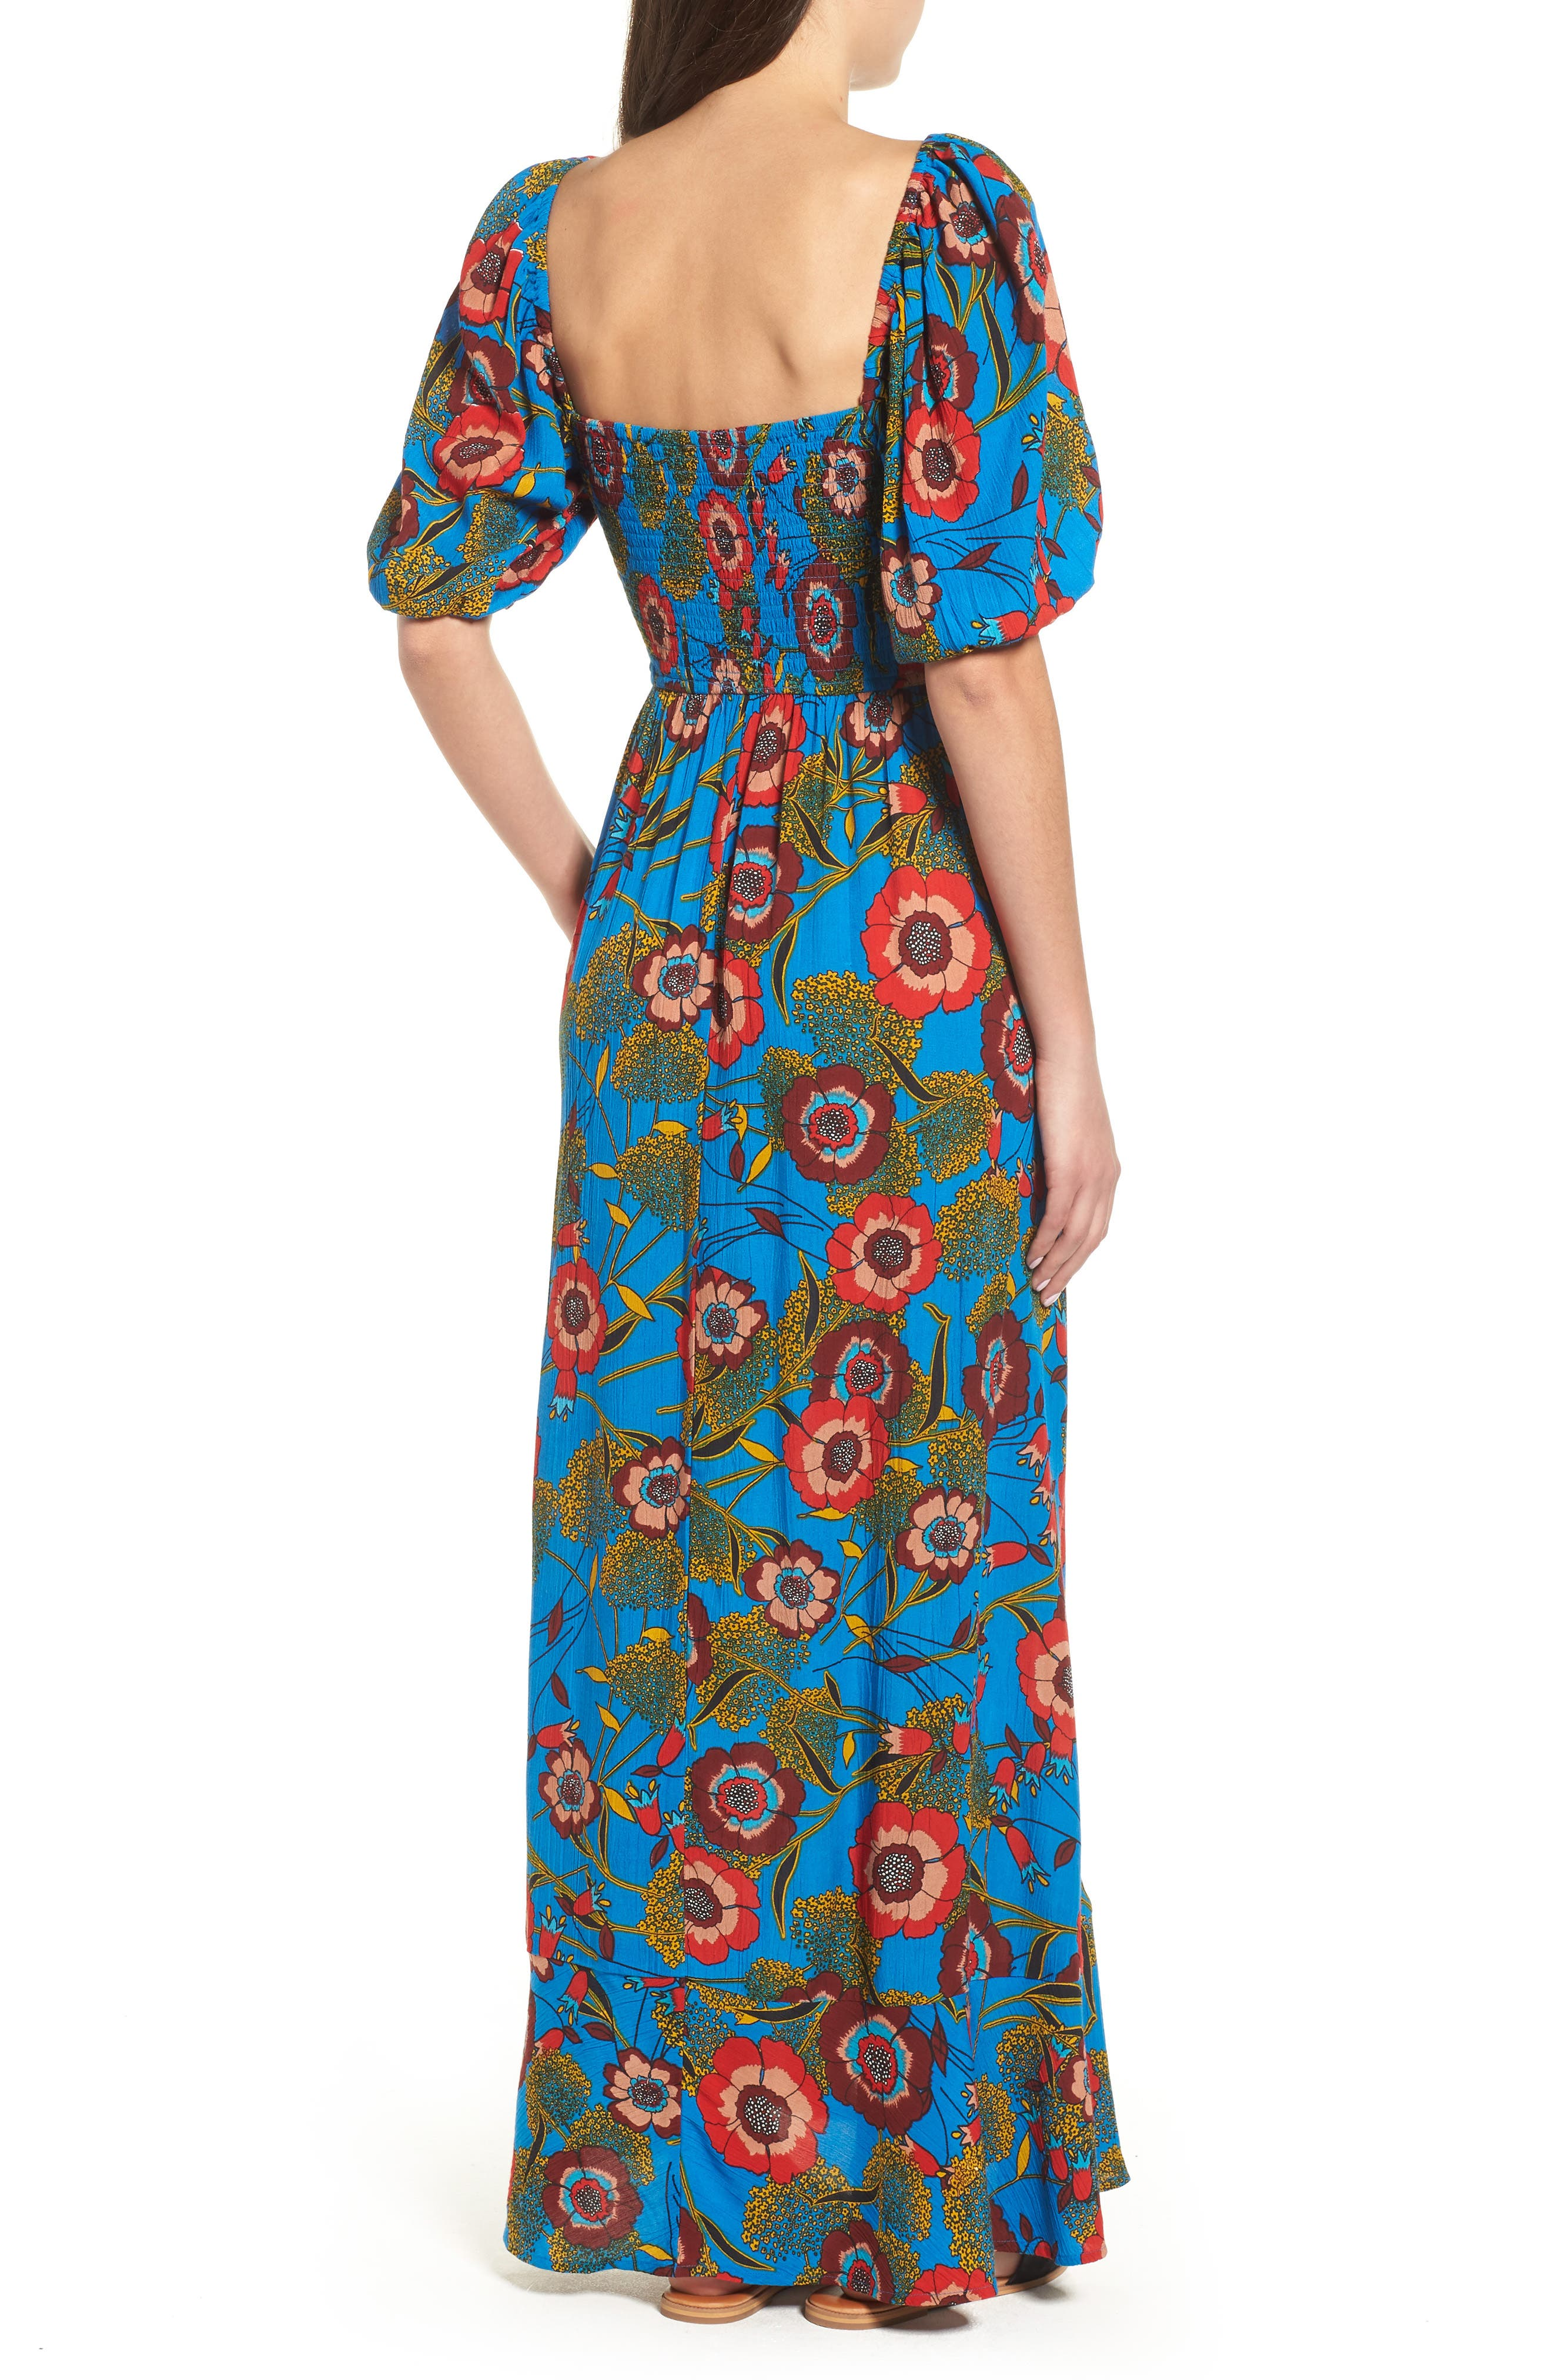 Heirloom Blossom Maxi Dress,                             Alternate thumbnail 2, color,                             ROYAL/ BLUE/ RED